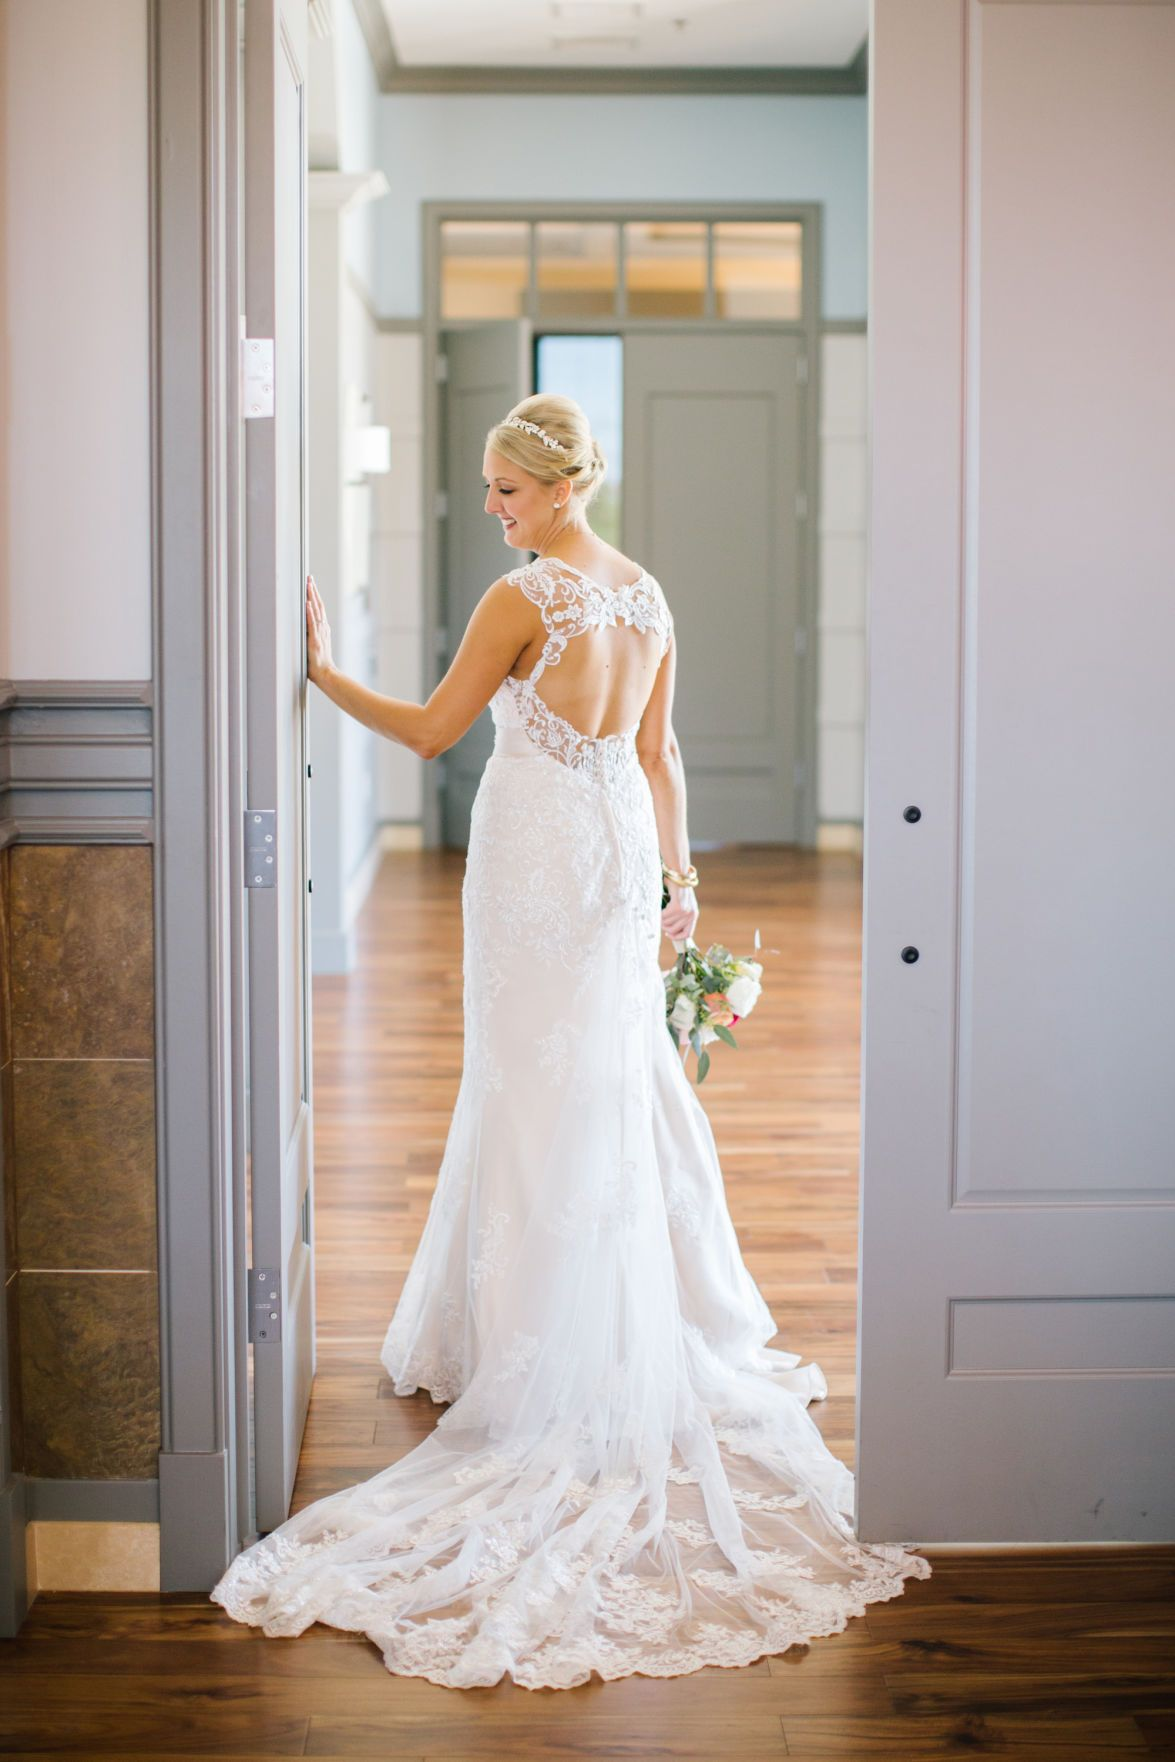 Wedding Essentials Omaha Nebraska Real Red Decor Bridal Details Nikki Moore Photography Gown Lace